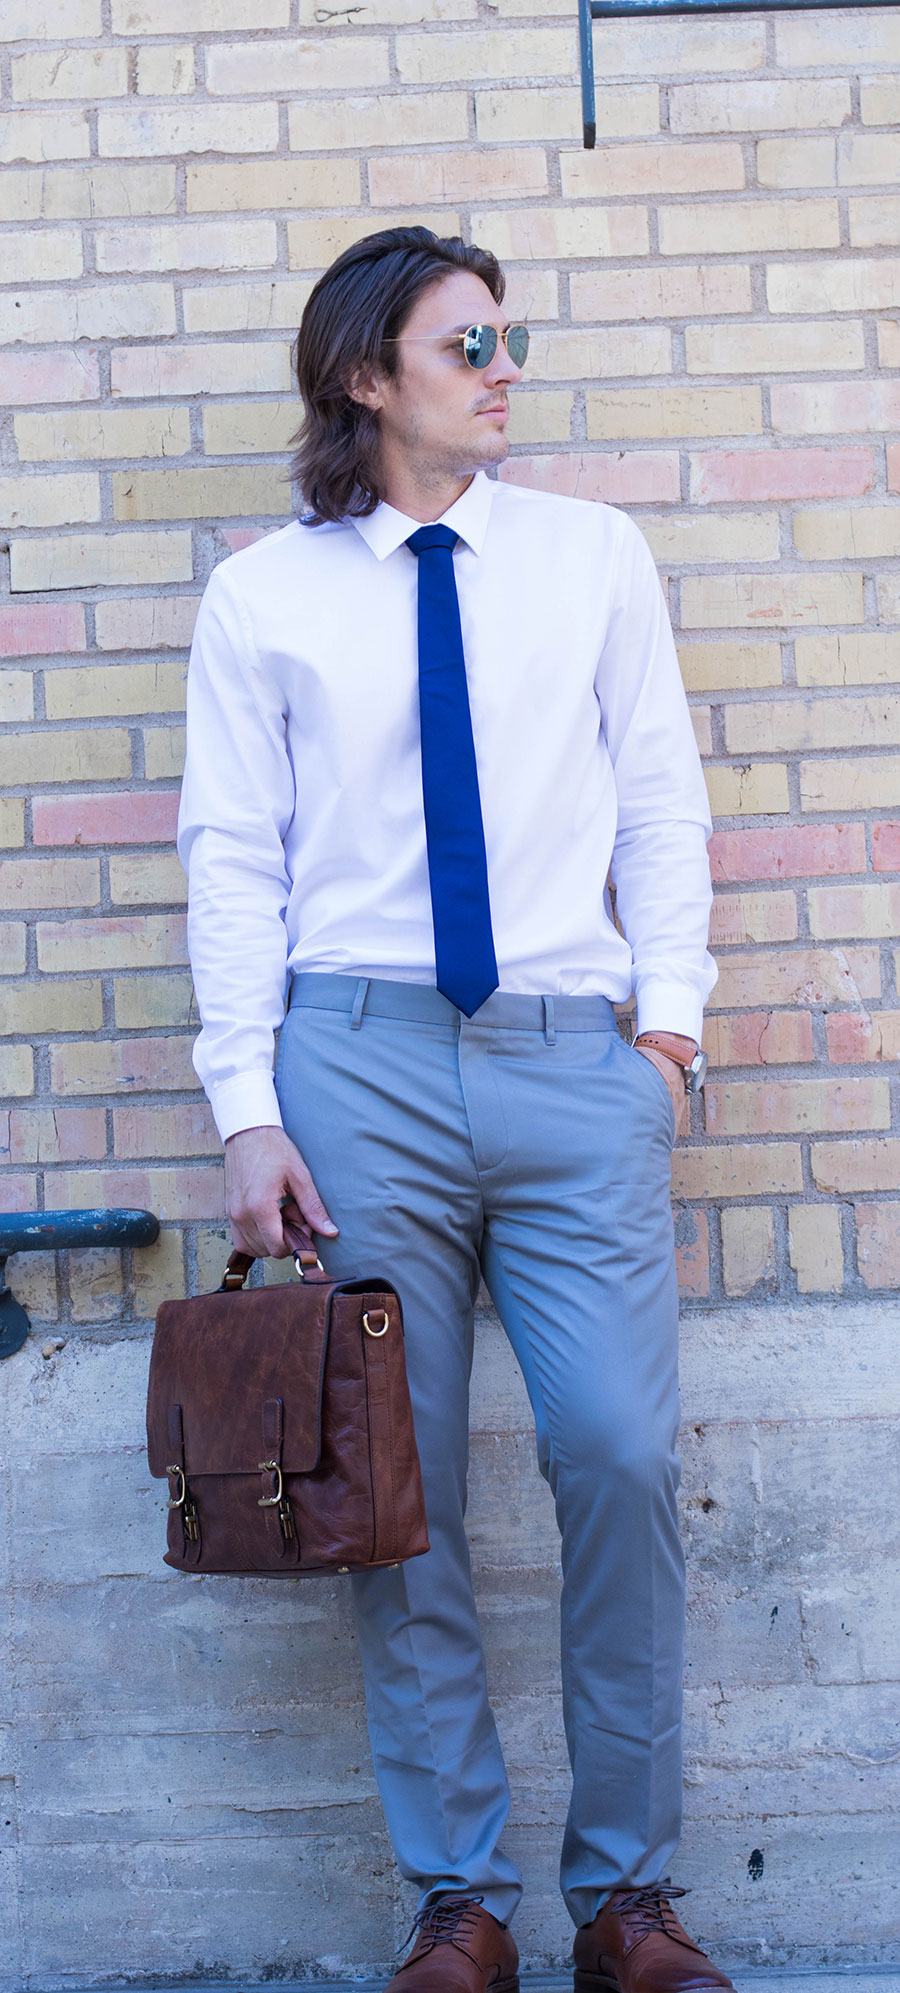 How To Choose The Perfect Men's Leather Briefcase